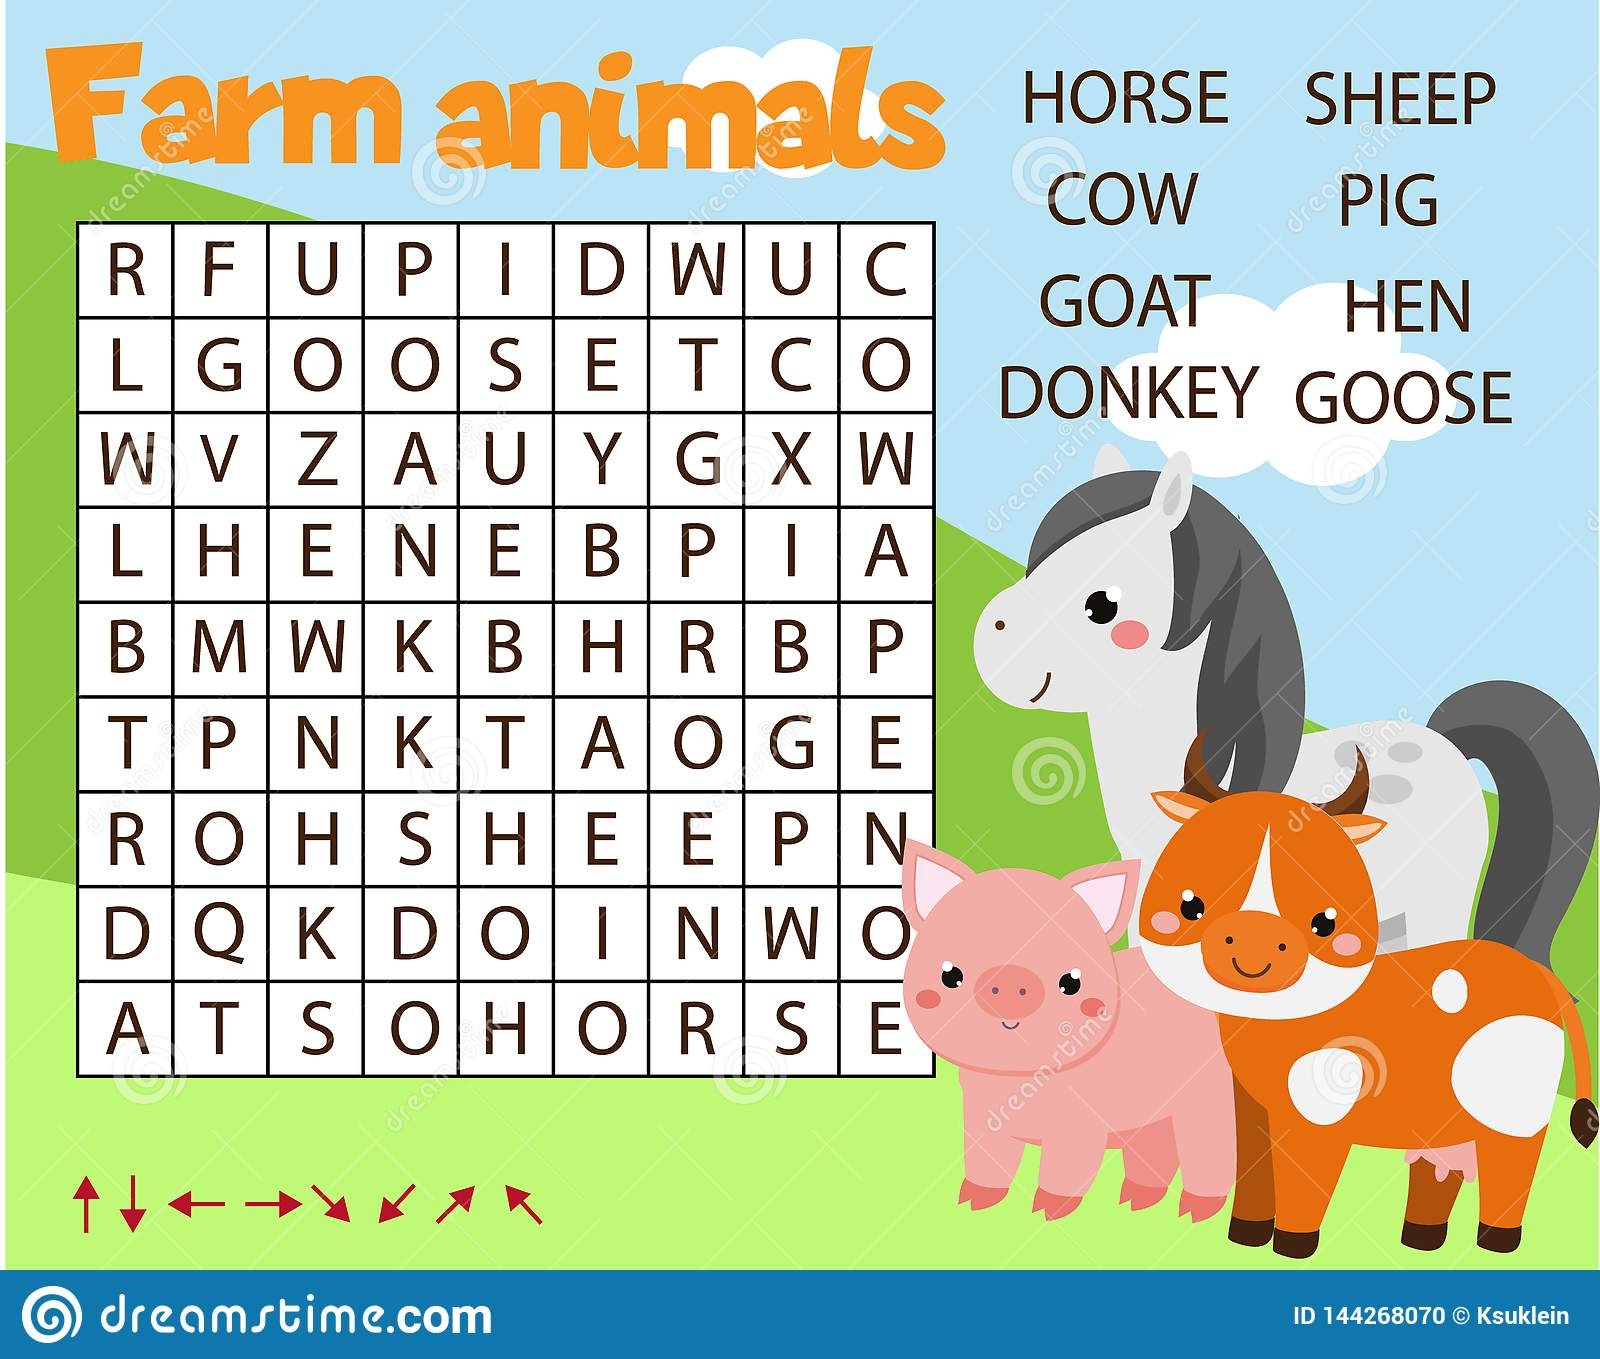 Educational Game For Children Word Search Puzzle Kids Activity Farm Animals Theme Learning